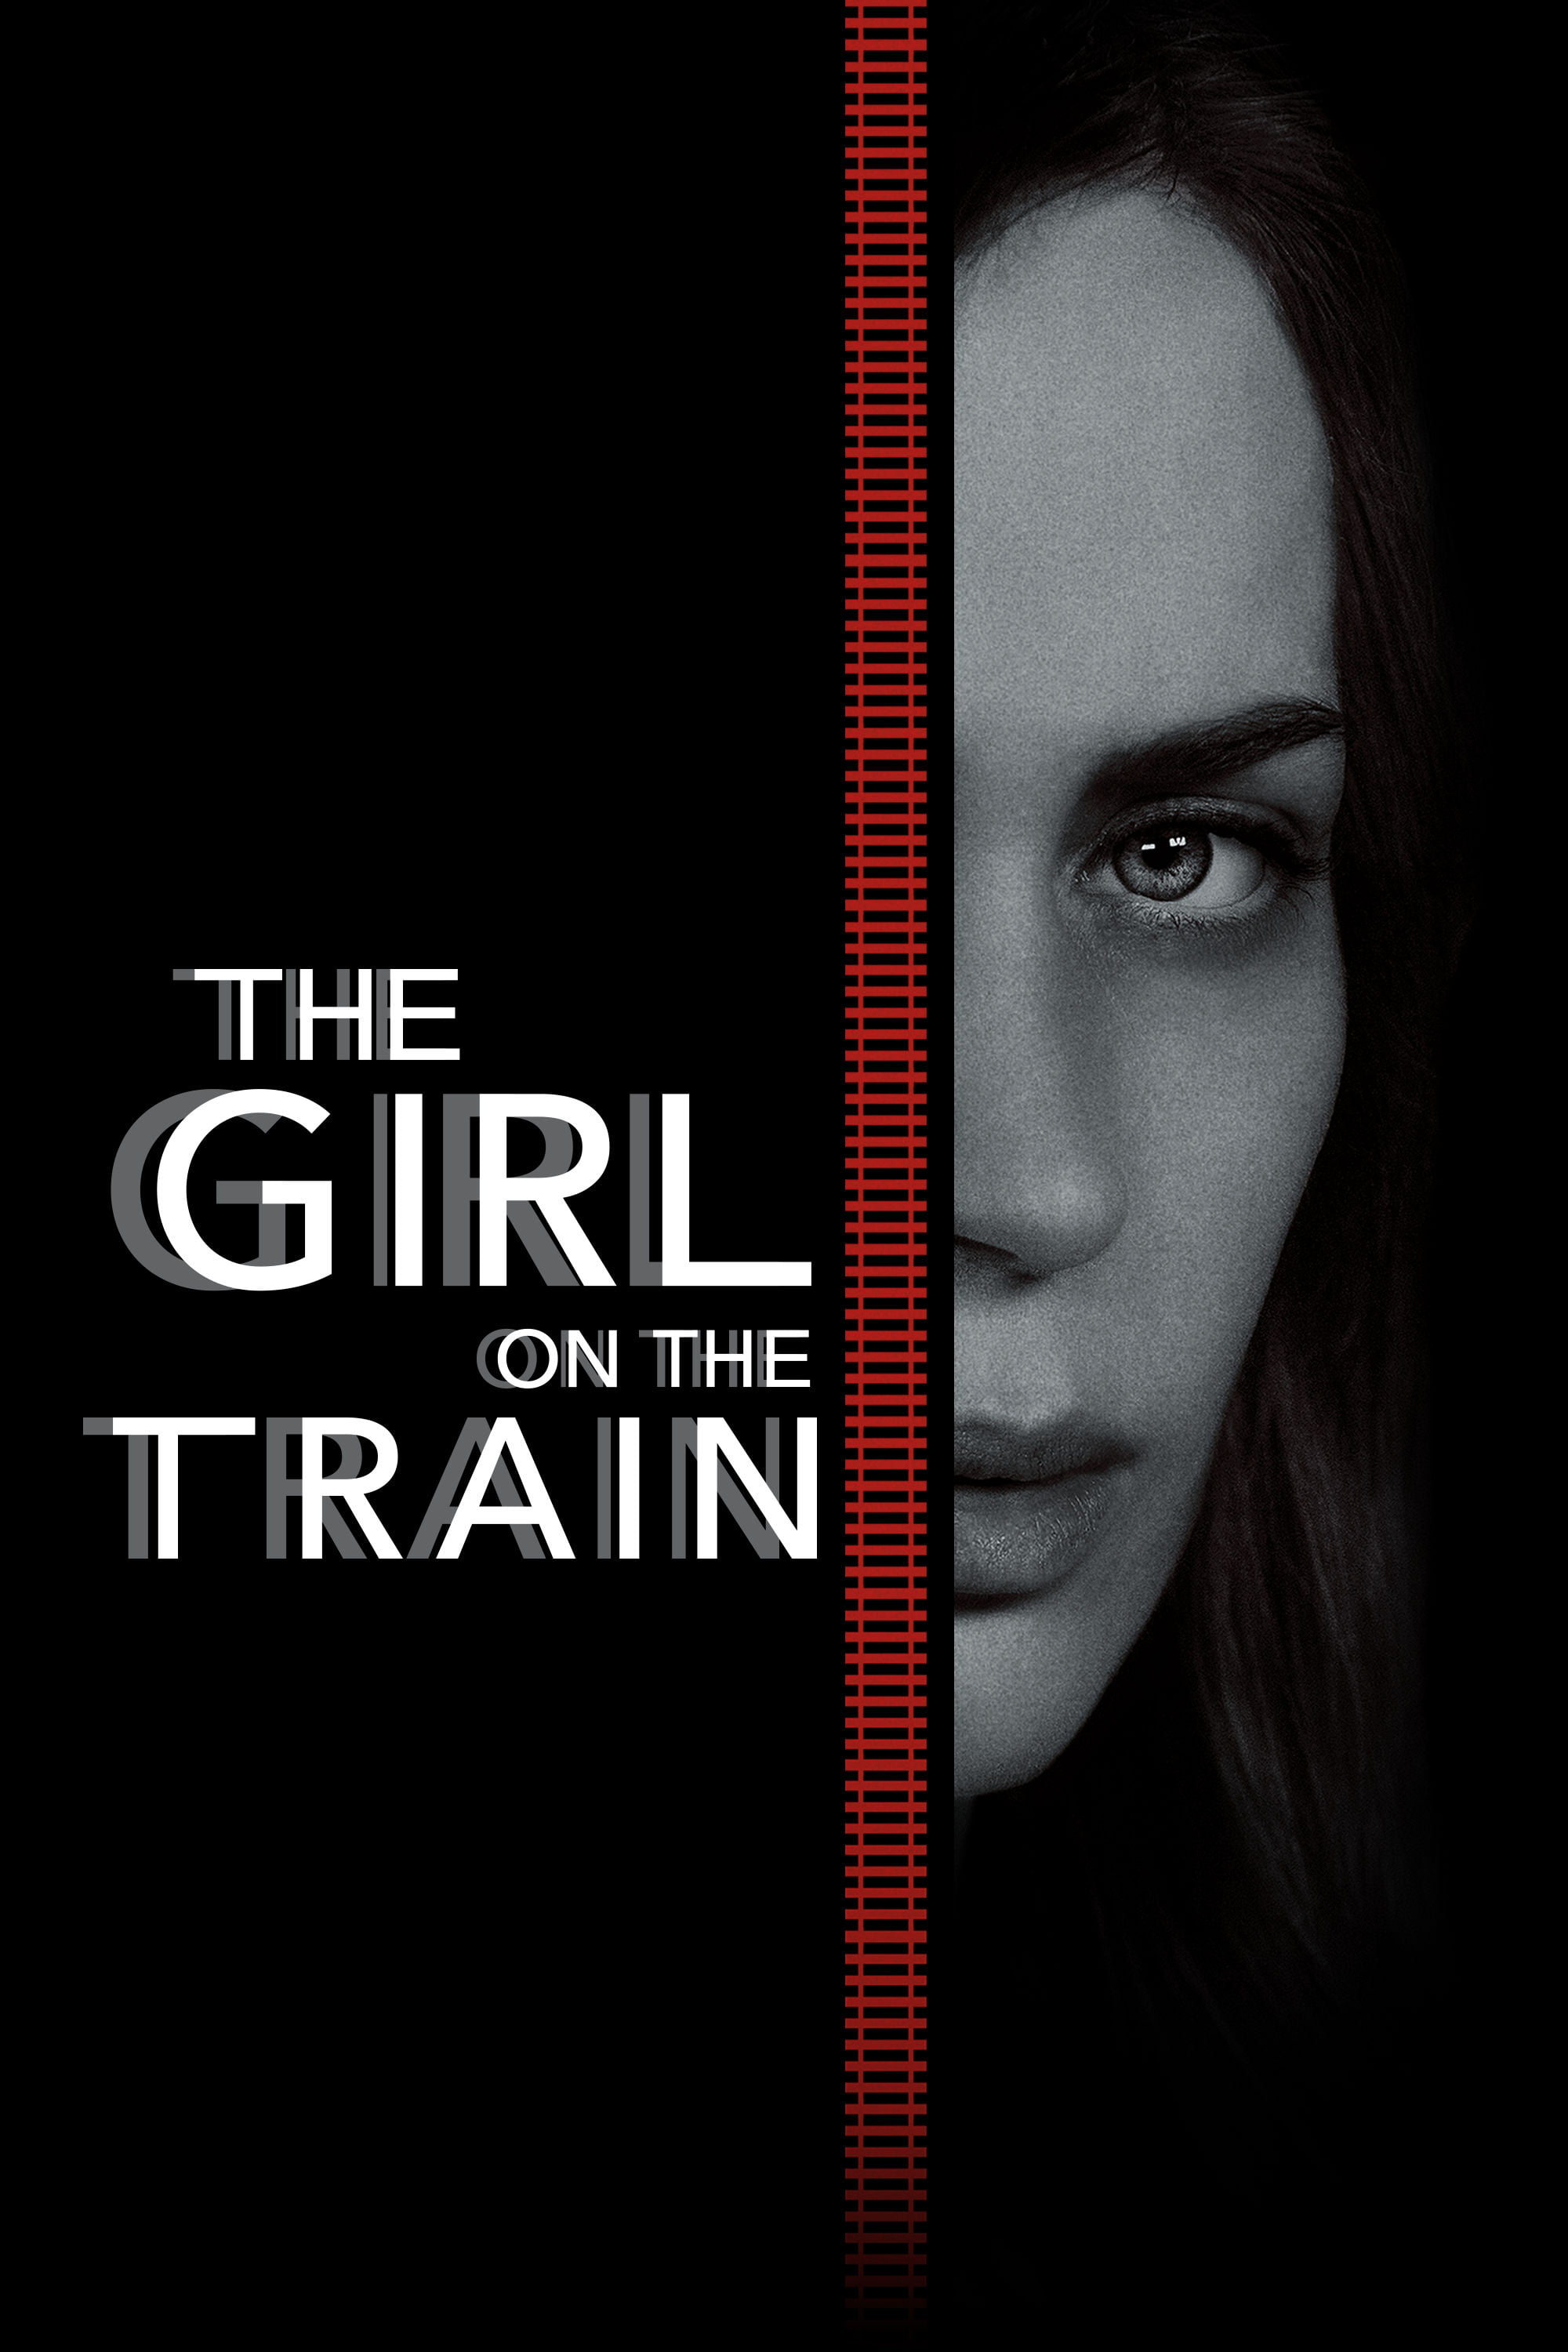 the-girl-on-the-train-filming-locations-itunes-poster